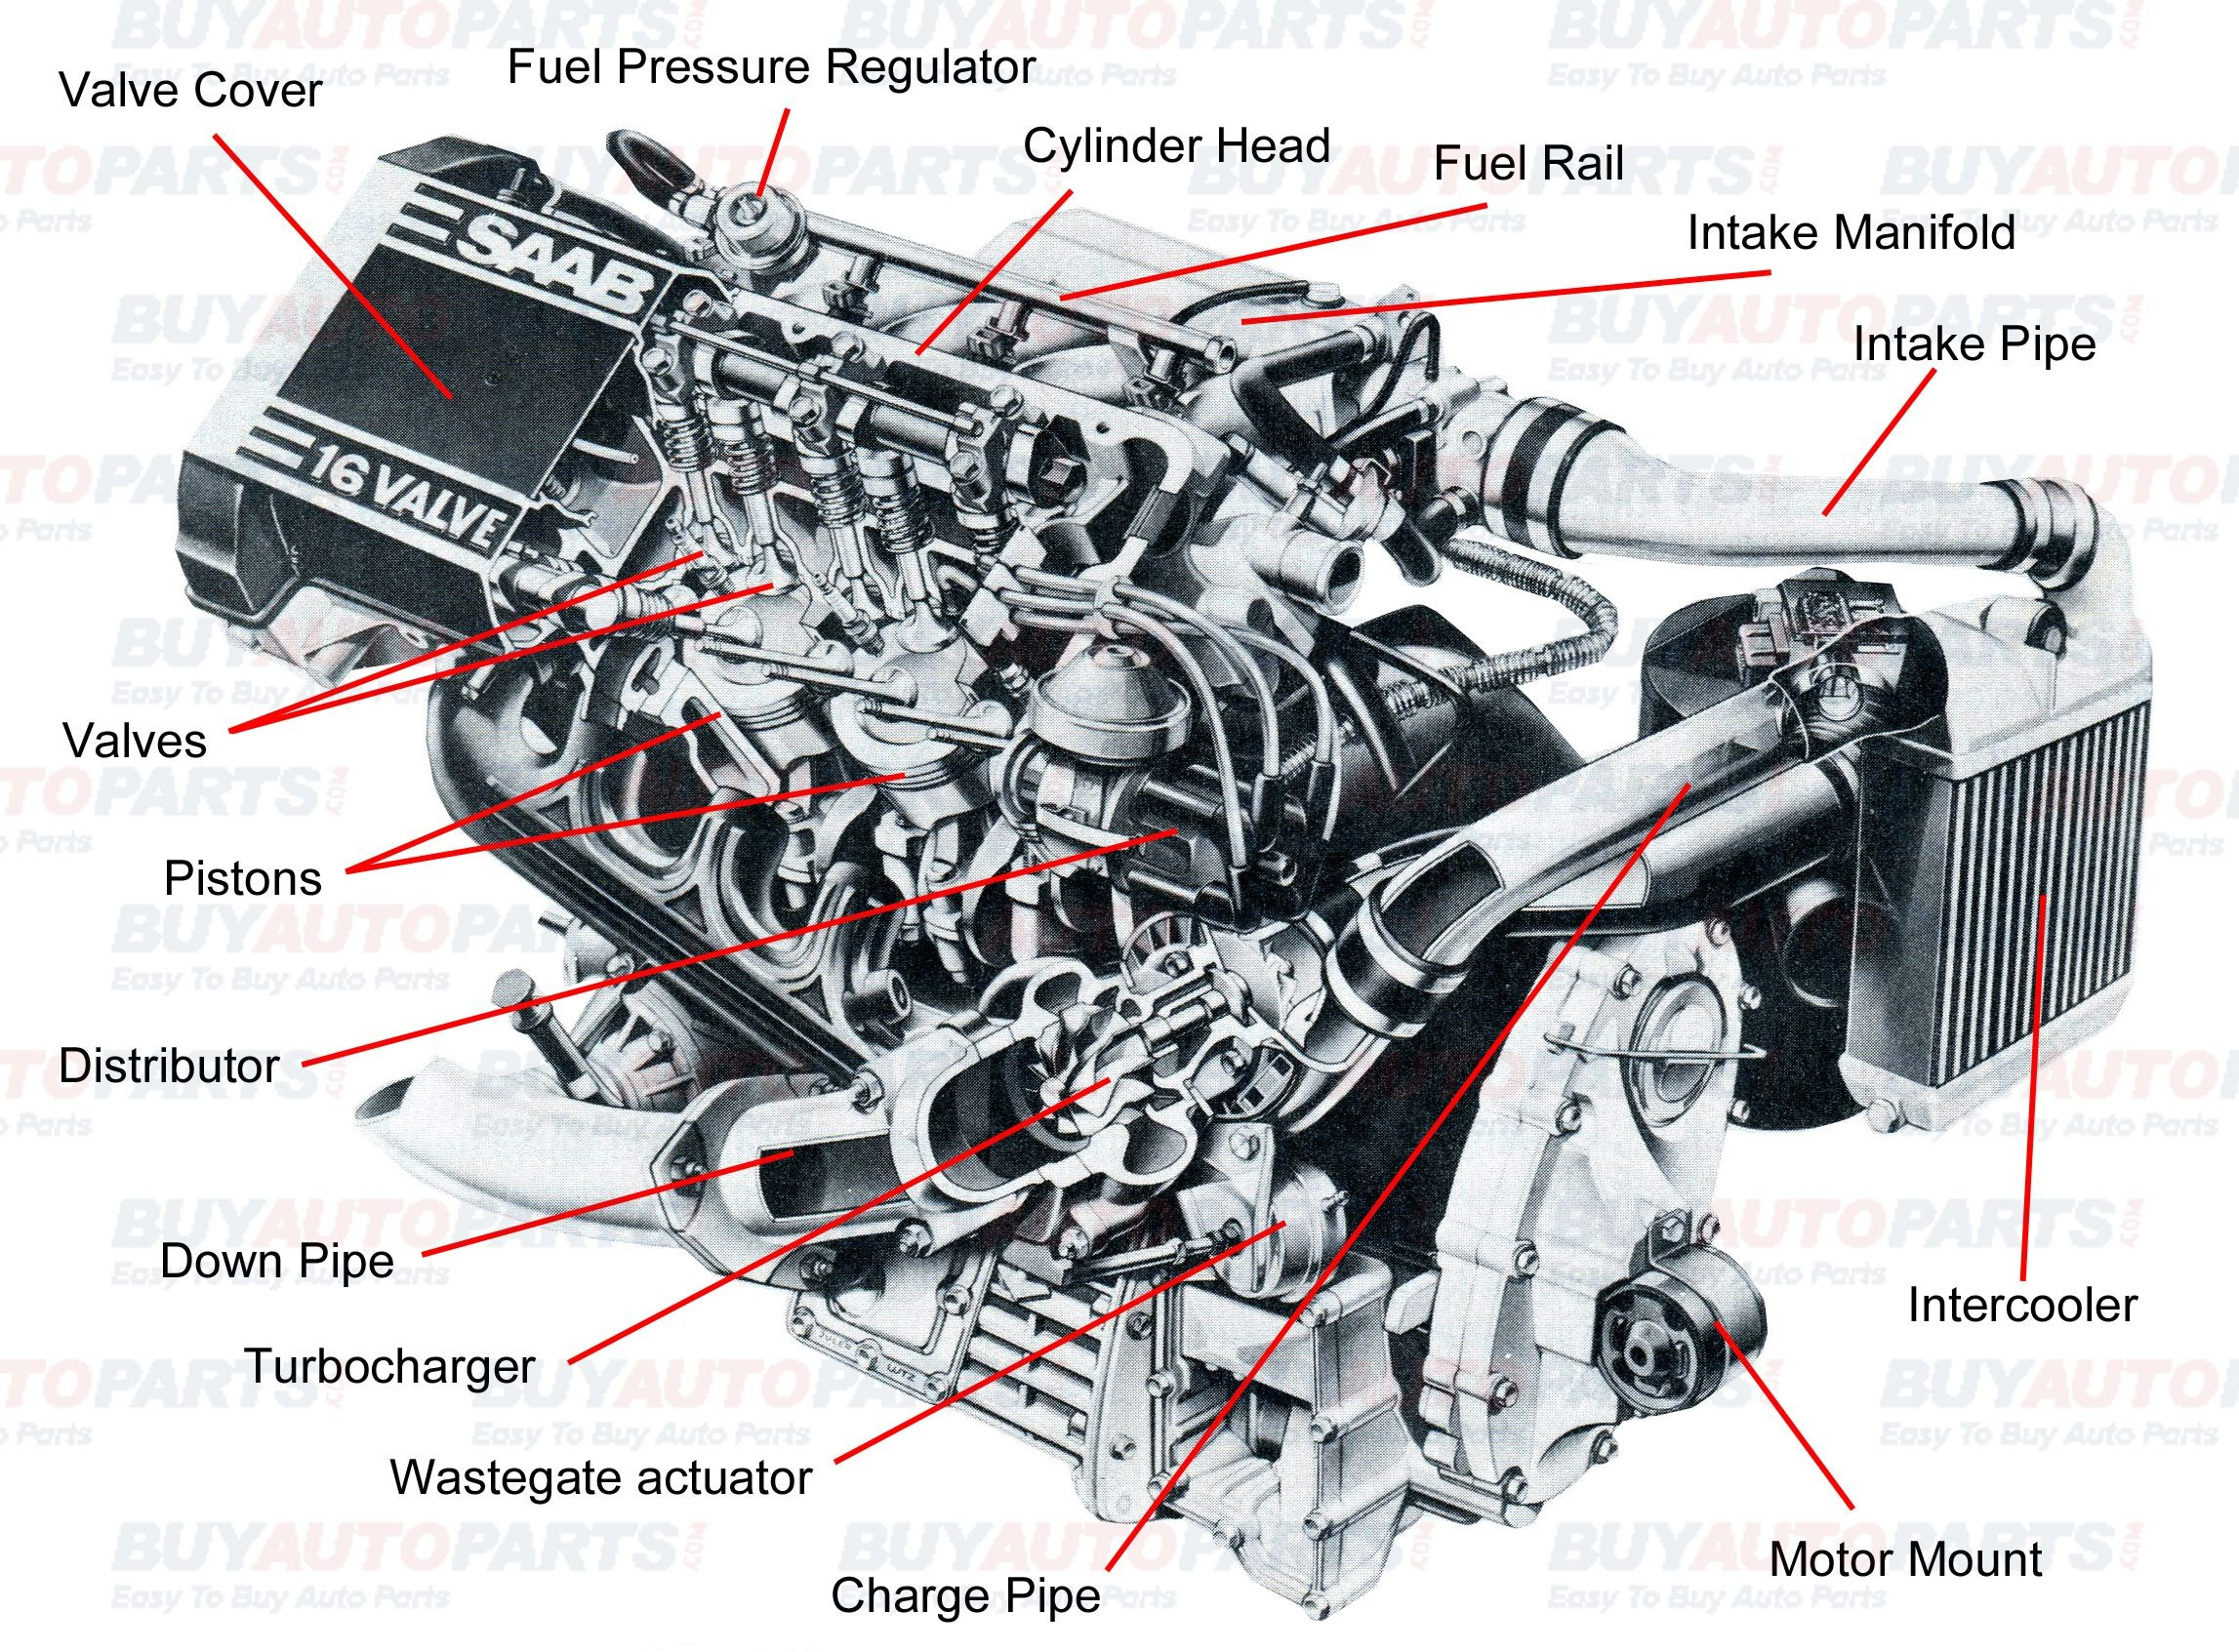 Basic Car Diagram Pin by Jimmiejanet Testellamwfz On What Does An Engine with Turbo Of Basic Car Diagram